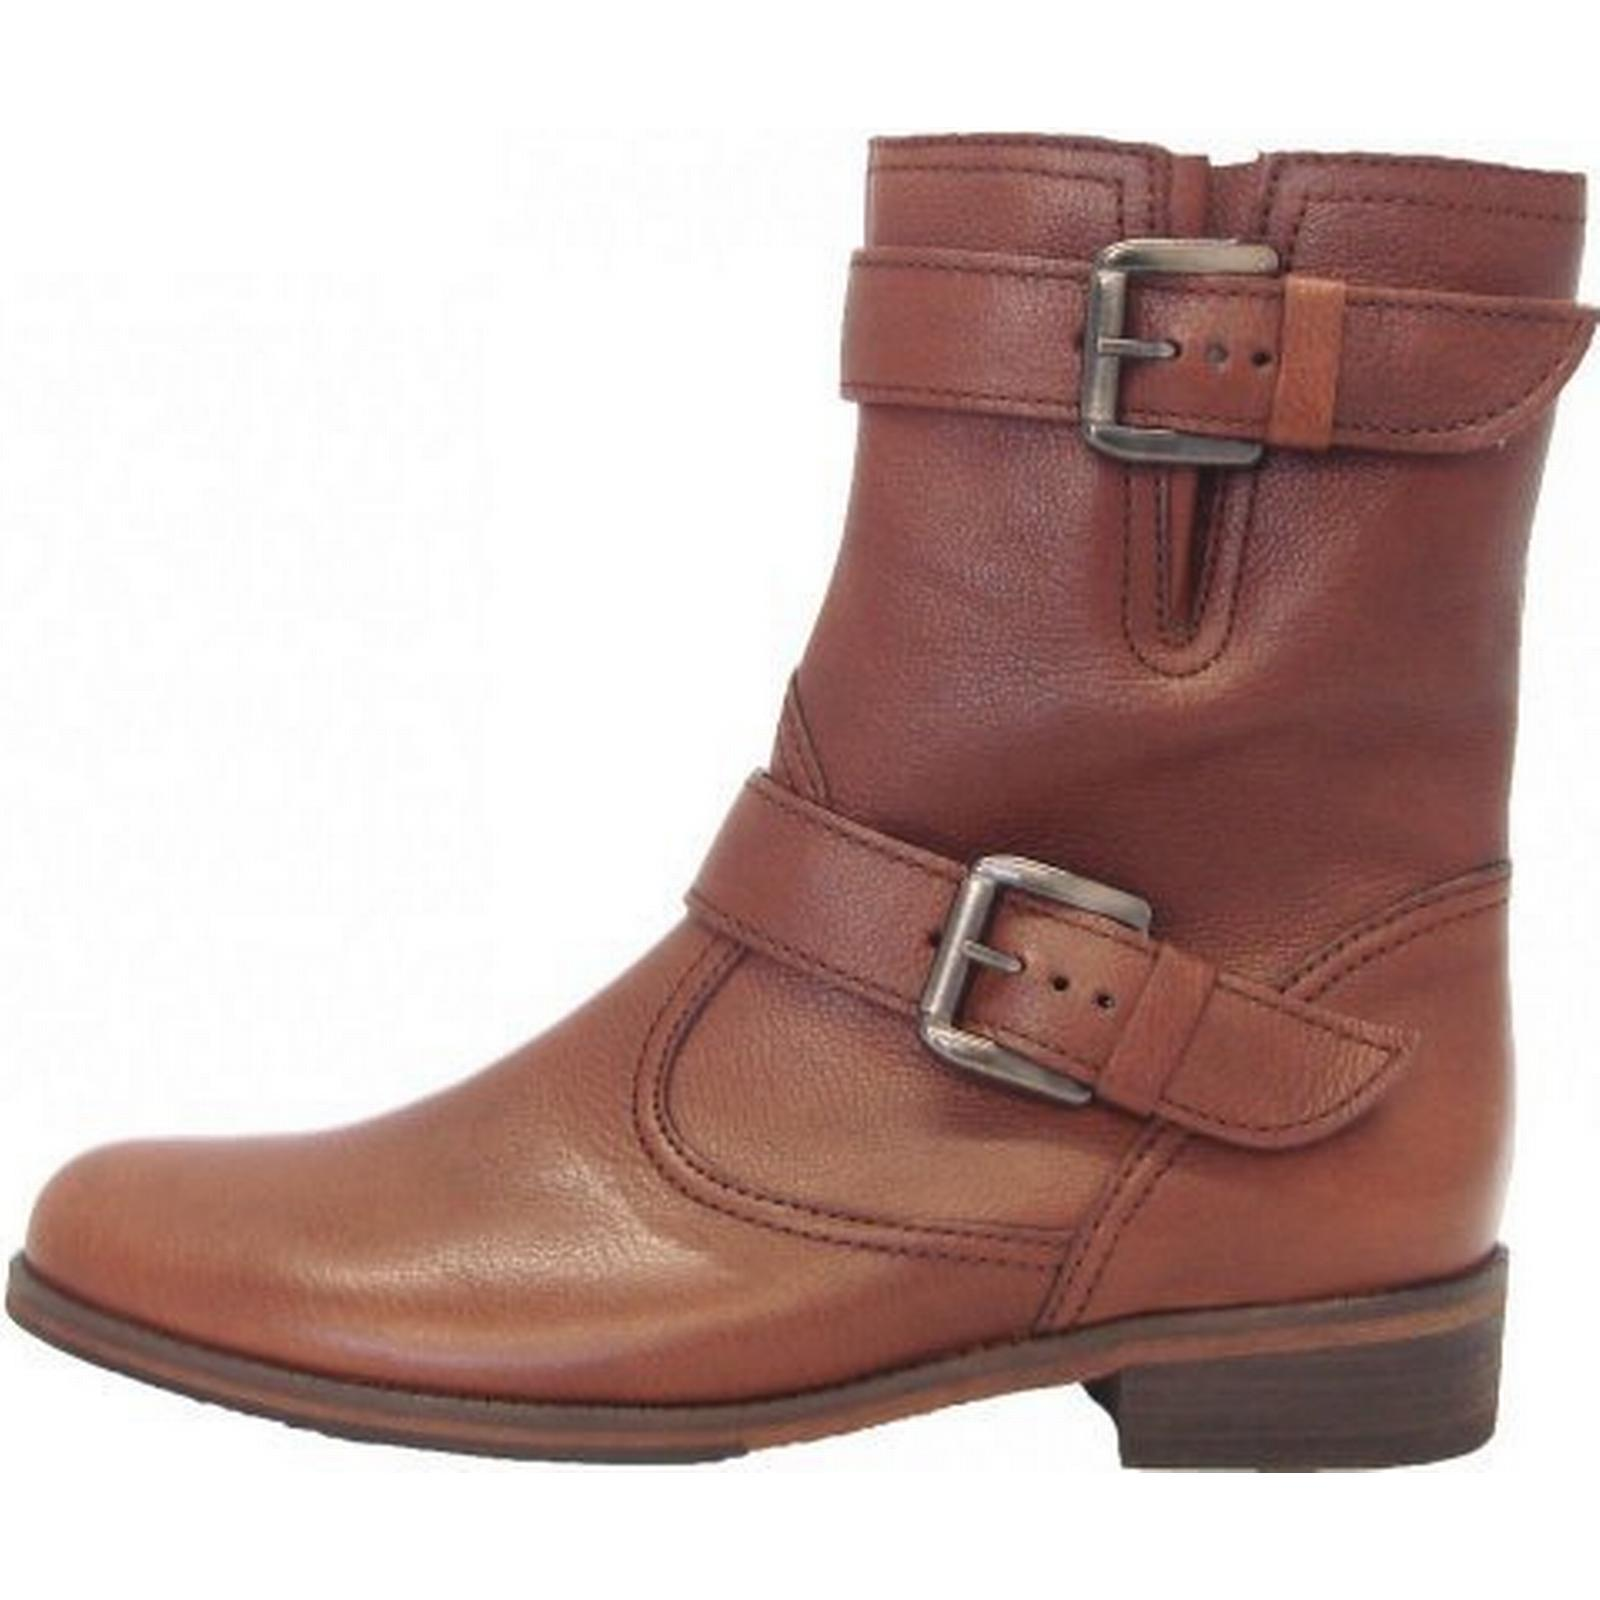 Gabor Luna Womens Mid Calf Boots In Brown Size: Colour: 7, Colour: Size: BROWN efa826